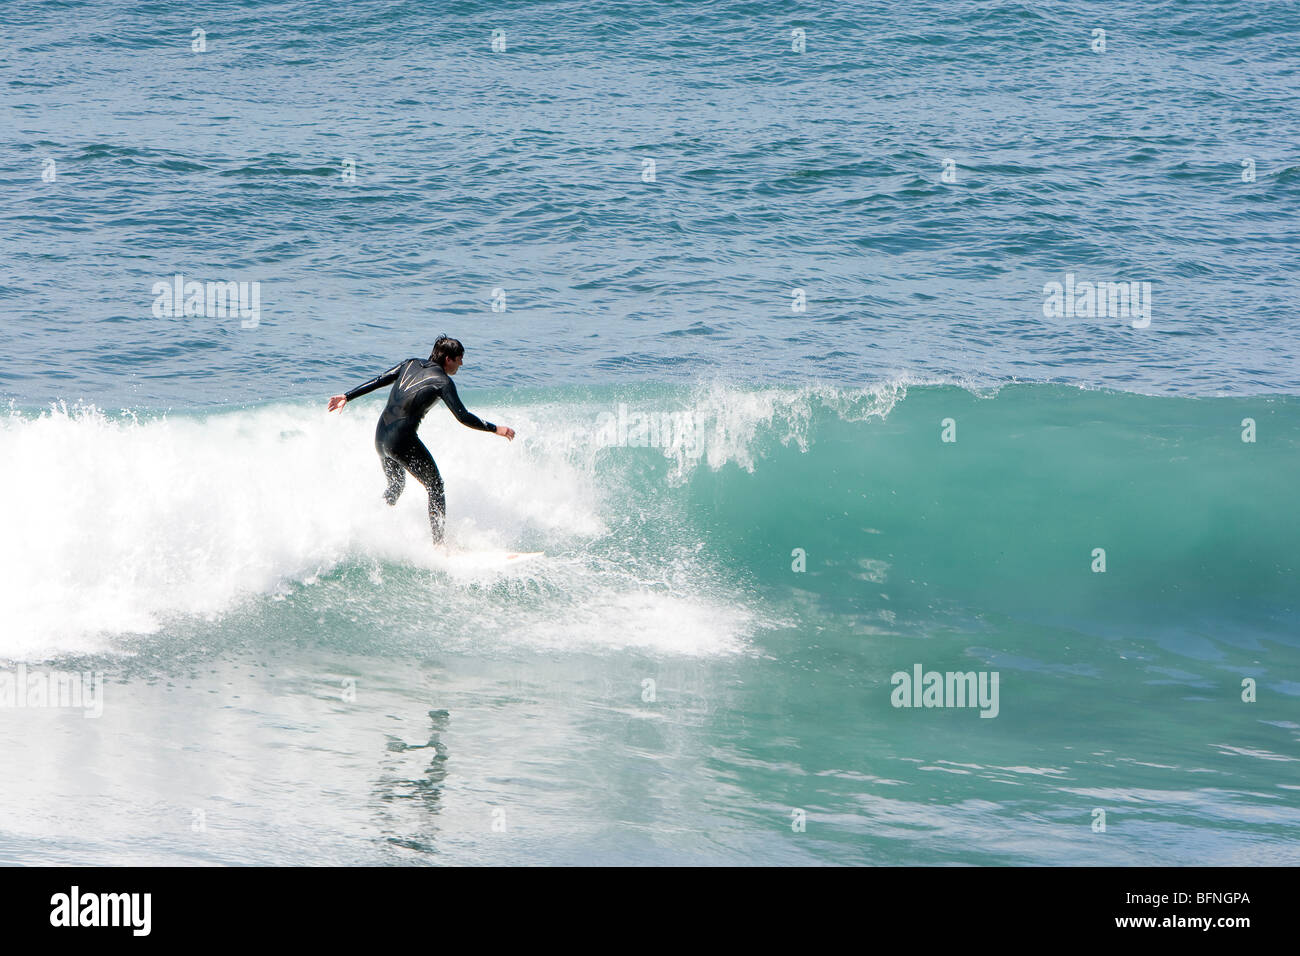 image of people practicing surf in the beach - Stock Image